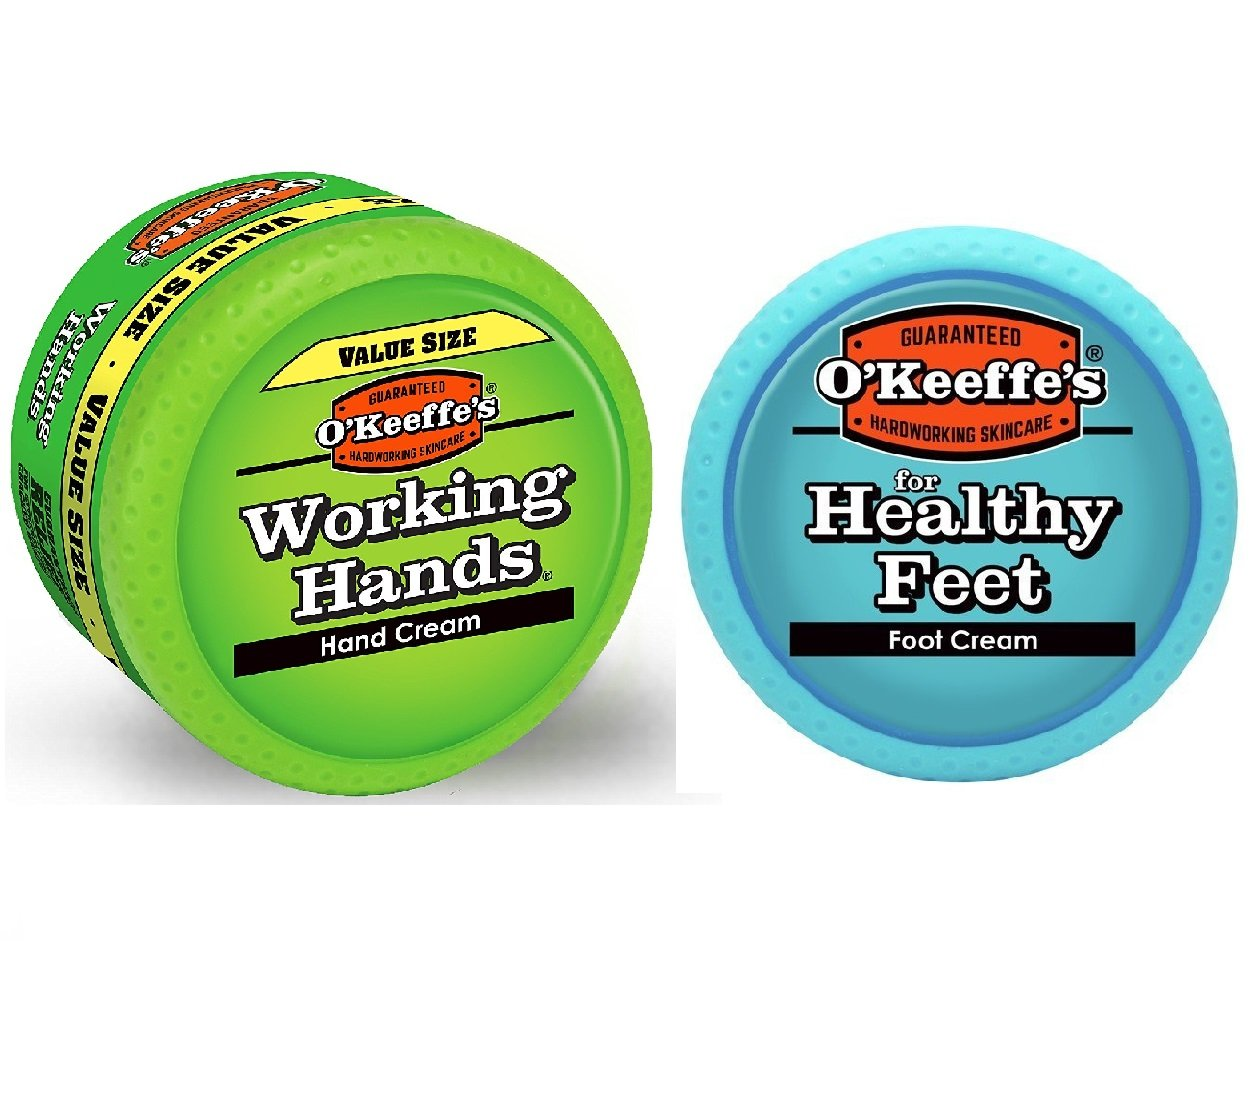 O'Keeffe's Working Hands 6.8oz Value Size - Healthy Feet Cream 3.2oz, Combo by